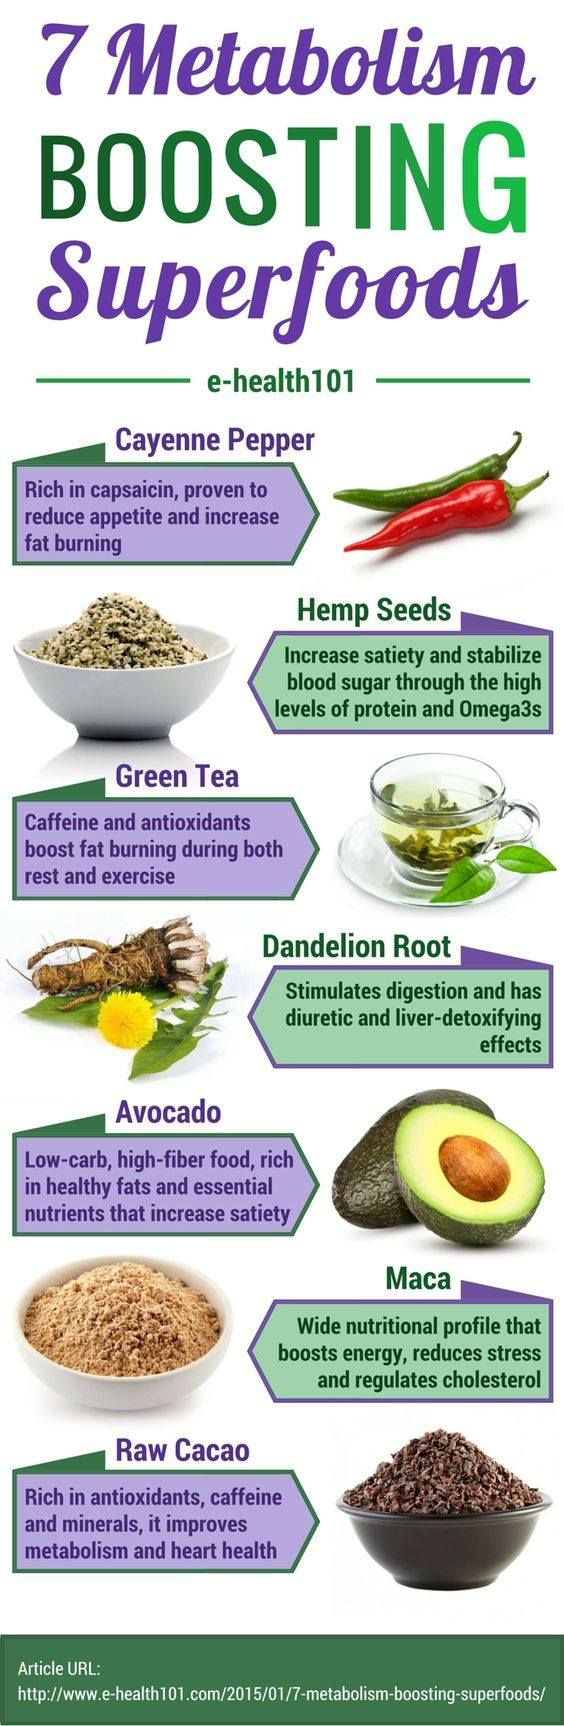 Metabolism Boosting Superfoods